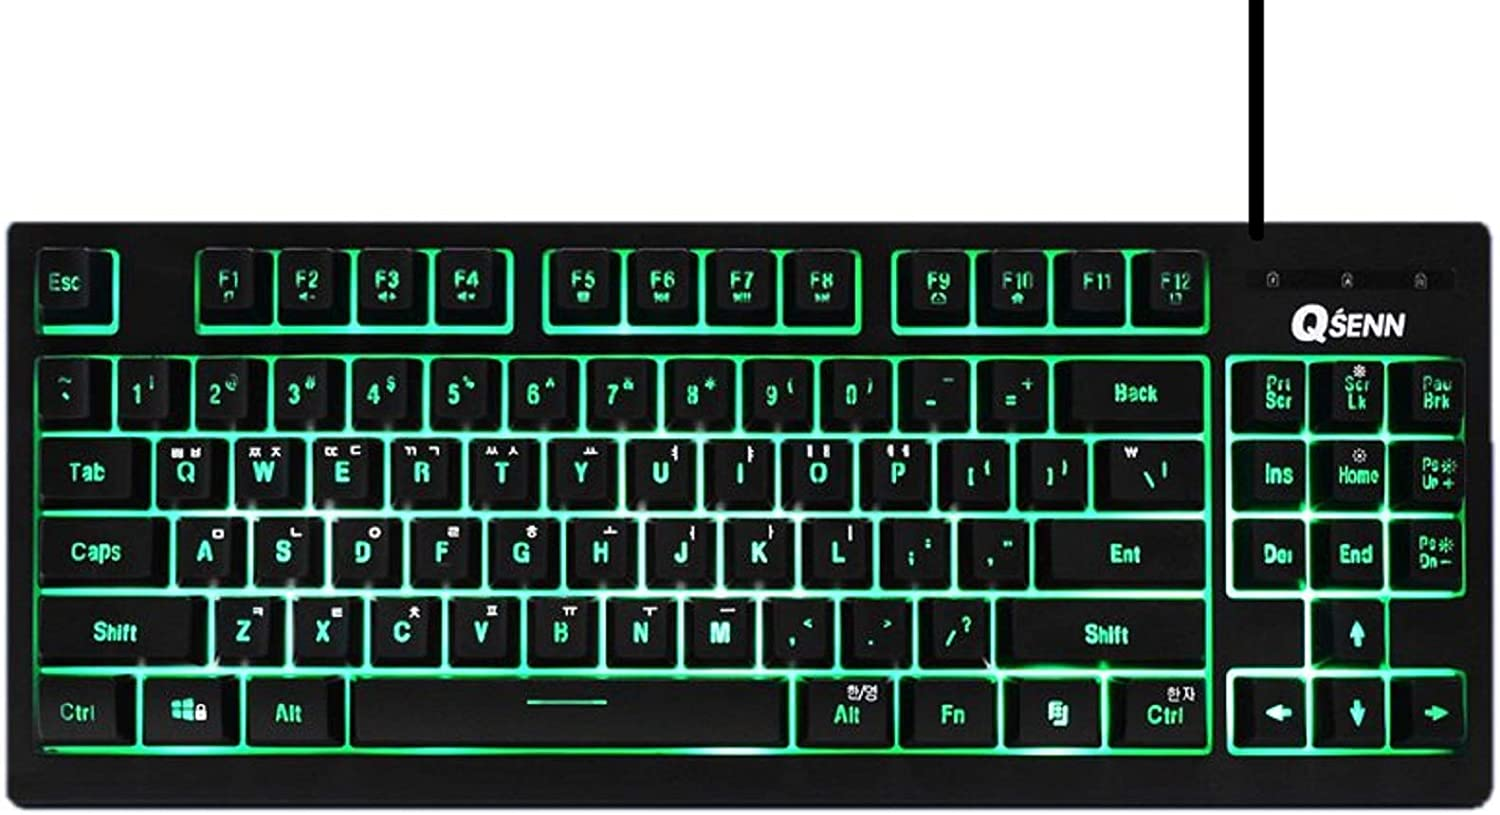 QSENN SEM-DT25T Korean English Gaming Tenkeyless Keyboard USB Wired Compact Mini Size Keyboard for PC